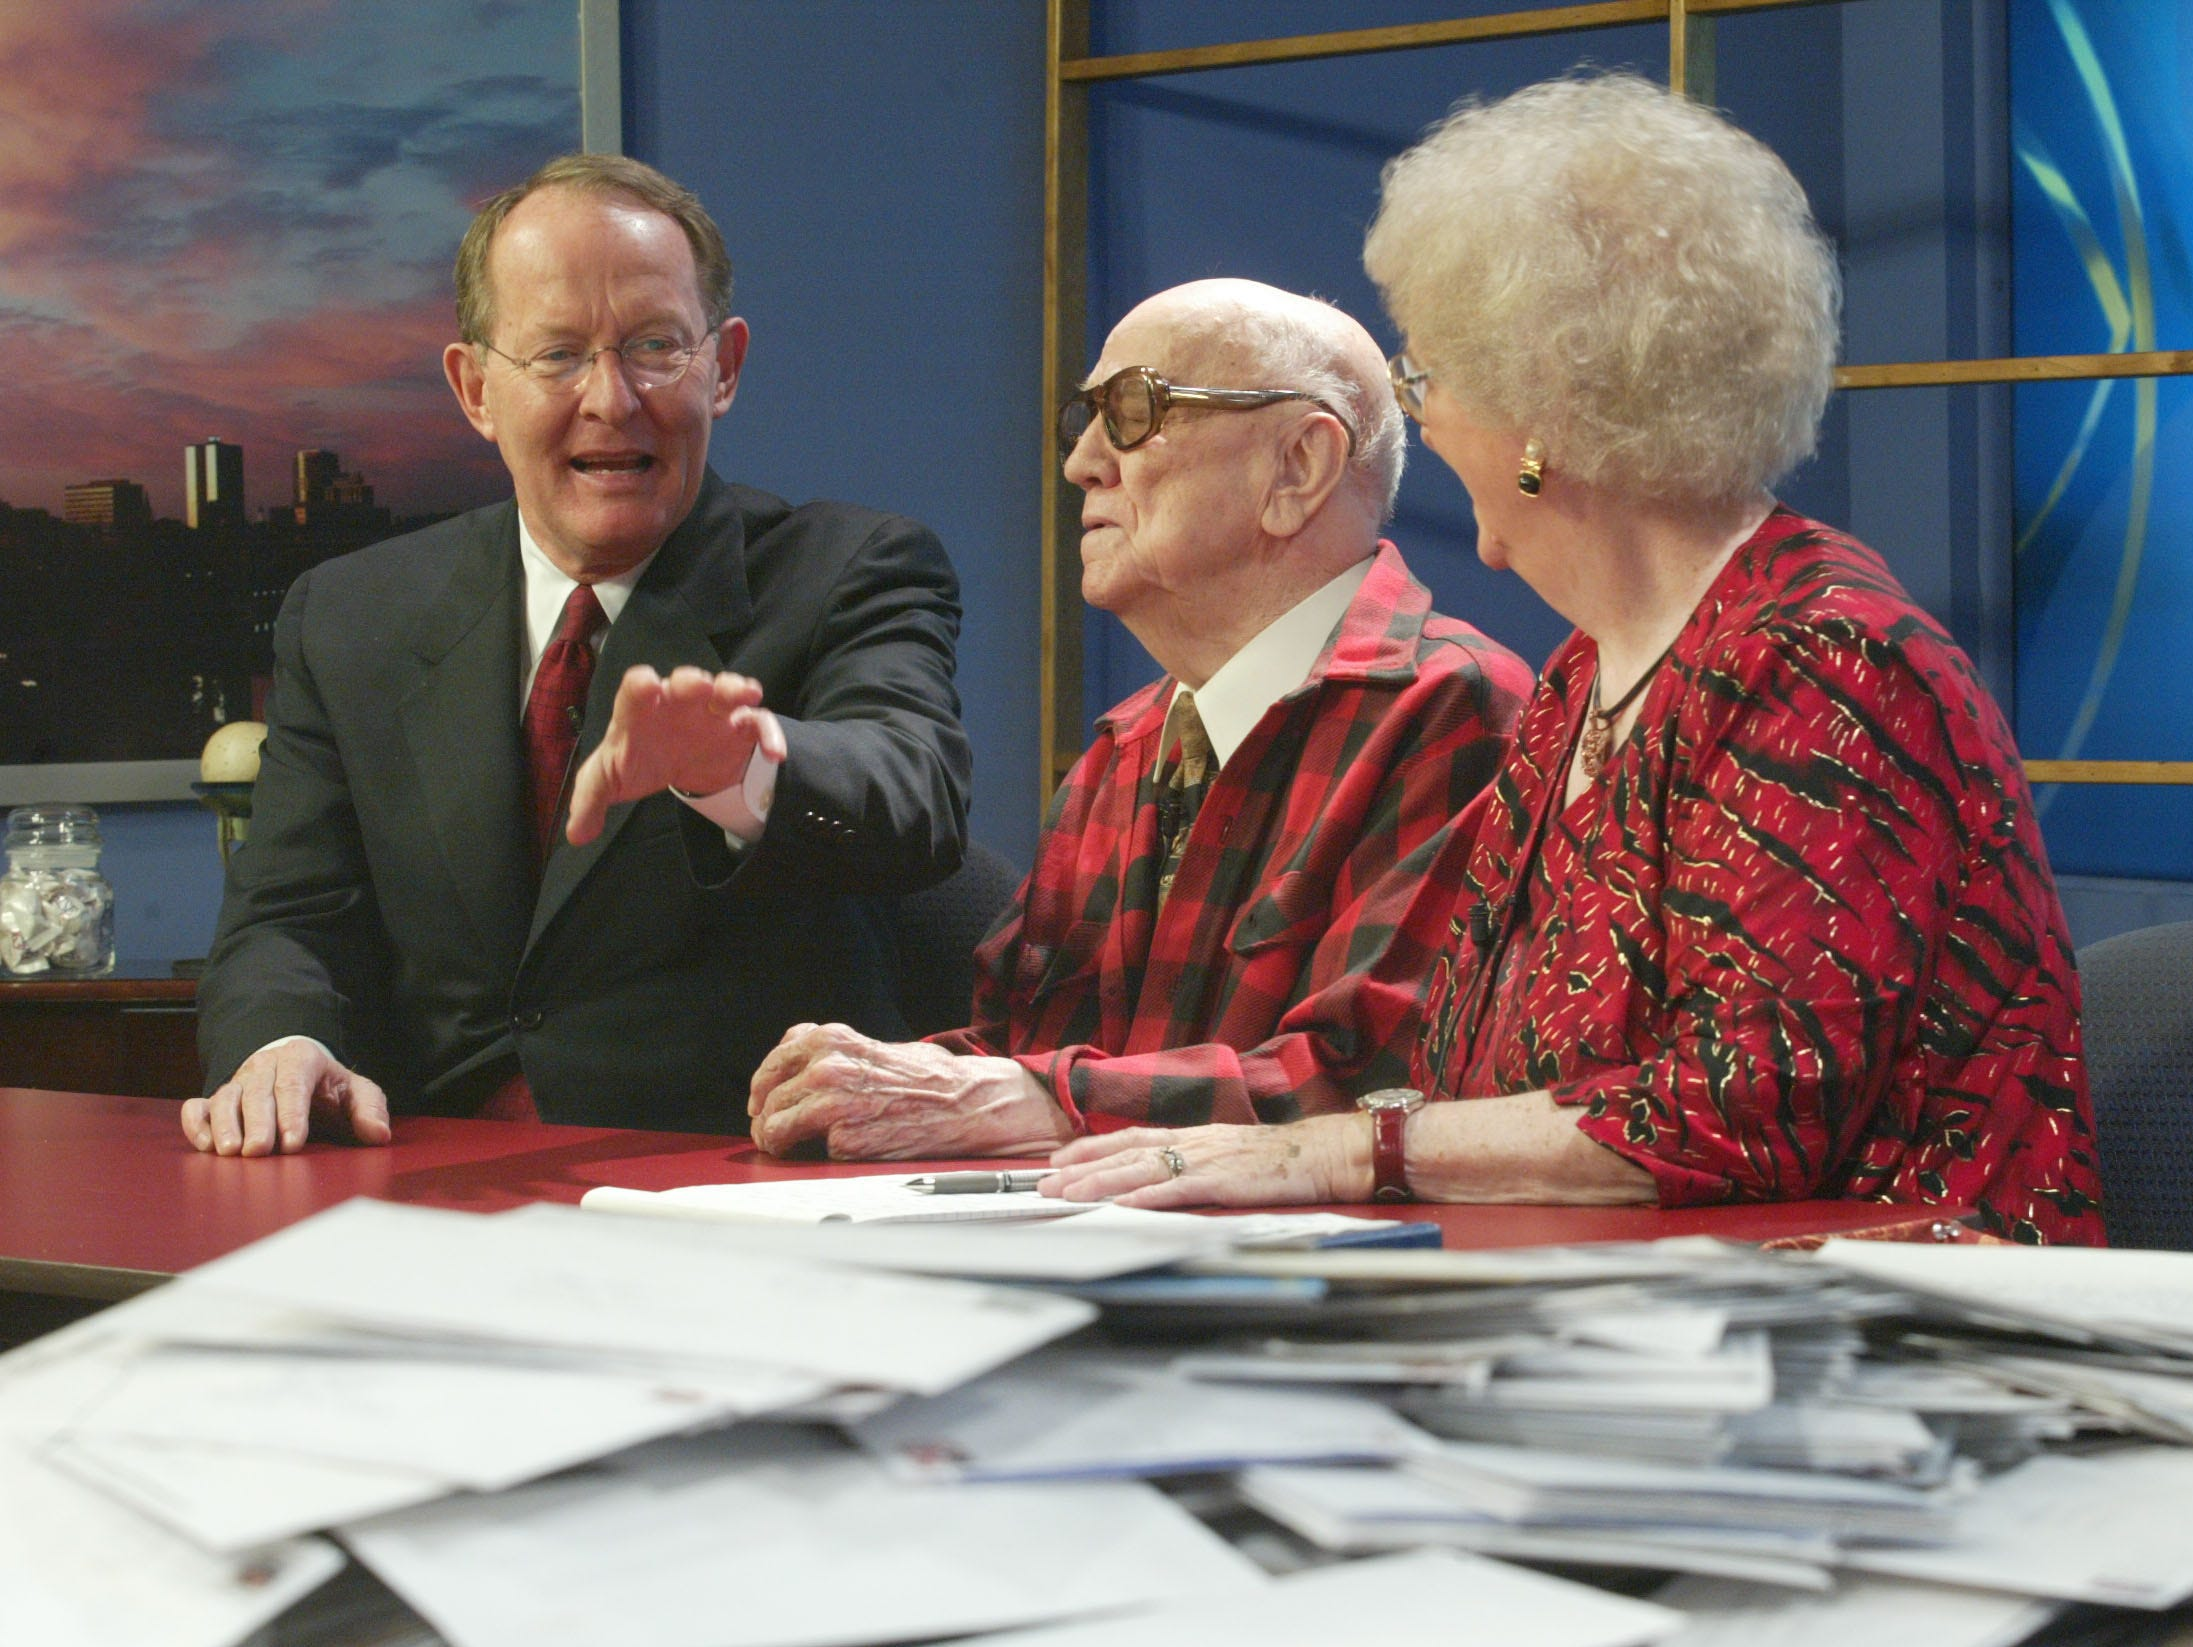 "U.S. Sen. Lamar Alexander gestures toward a pile of letters while talking with the Rev. J Bazzel Mull and his wife Elizabeth Mull during the taping of their weekly show, "" The Mull Singing Convention."" The letters, 10,854 total, were written by the show's audience to Sen. Alexander in response to the Mull's request due to worries that the phrase ""Under God"" may be taken out of the pledge of alliegence."